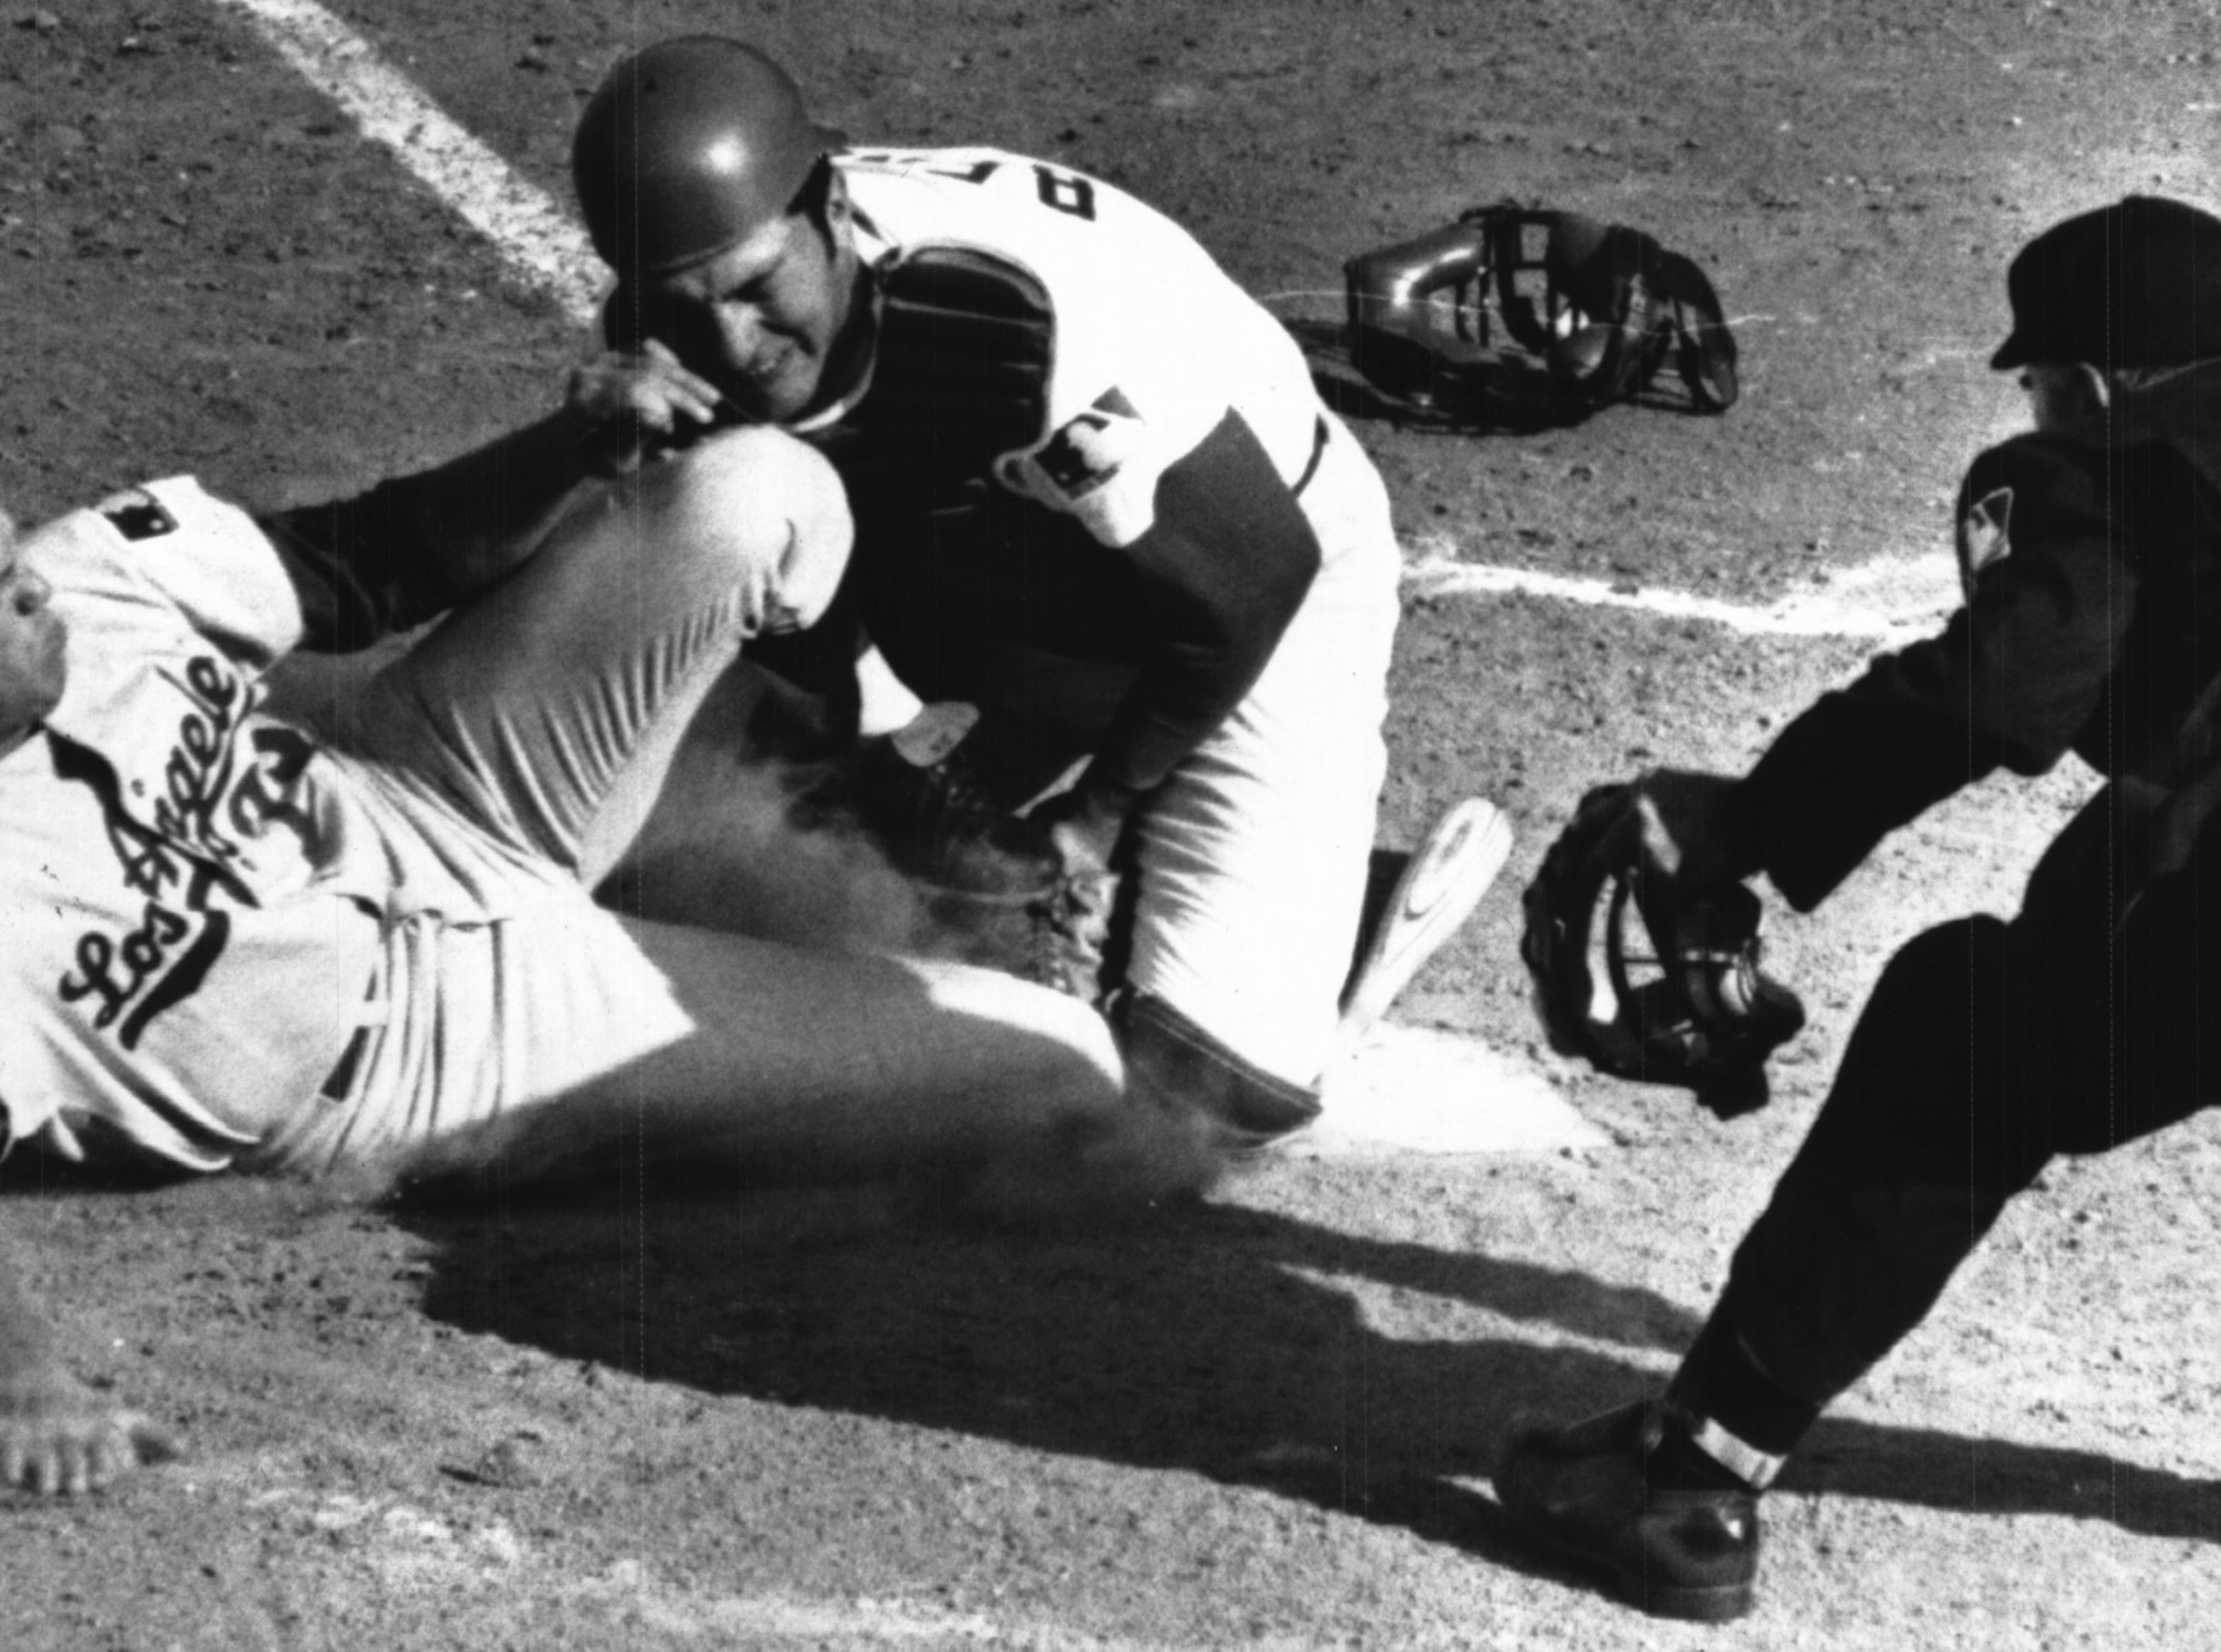 APRIL 8, 1969: A Little Bit Of Violent Contact At Home Plate Monday...Dodgers' West Parker attempts to score from third on grounder in eighth inning is met at home plate by Cincinnati catcher Johnny Bench after throw home by Tony Perez. The Enquirer/Fred Straub